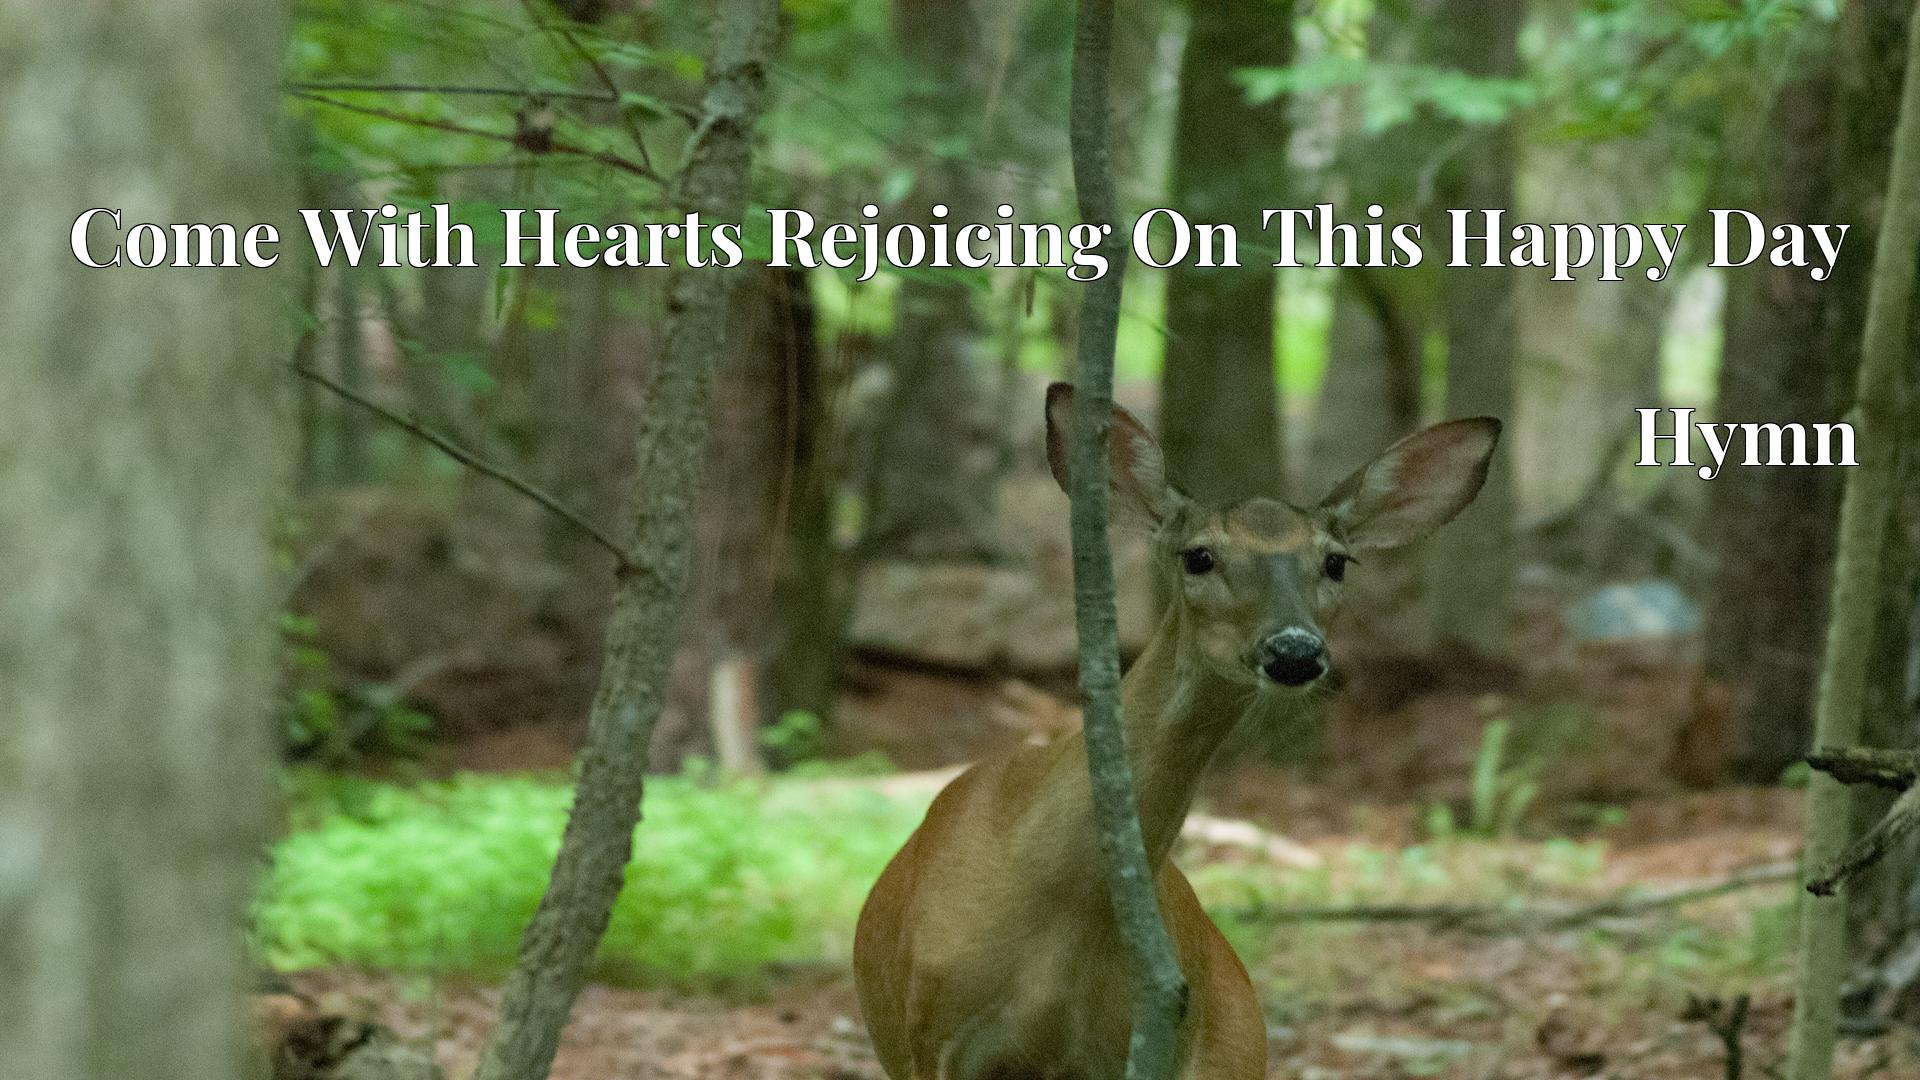 Come With Hearts Rejoicing On This Happy Day - Hymn